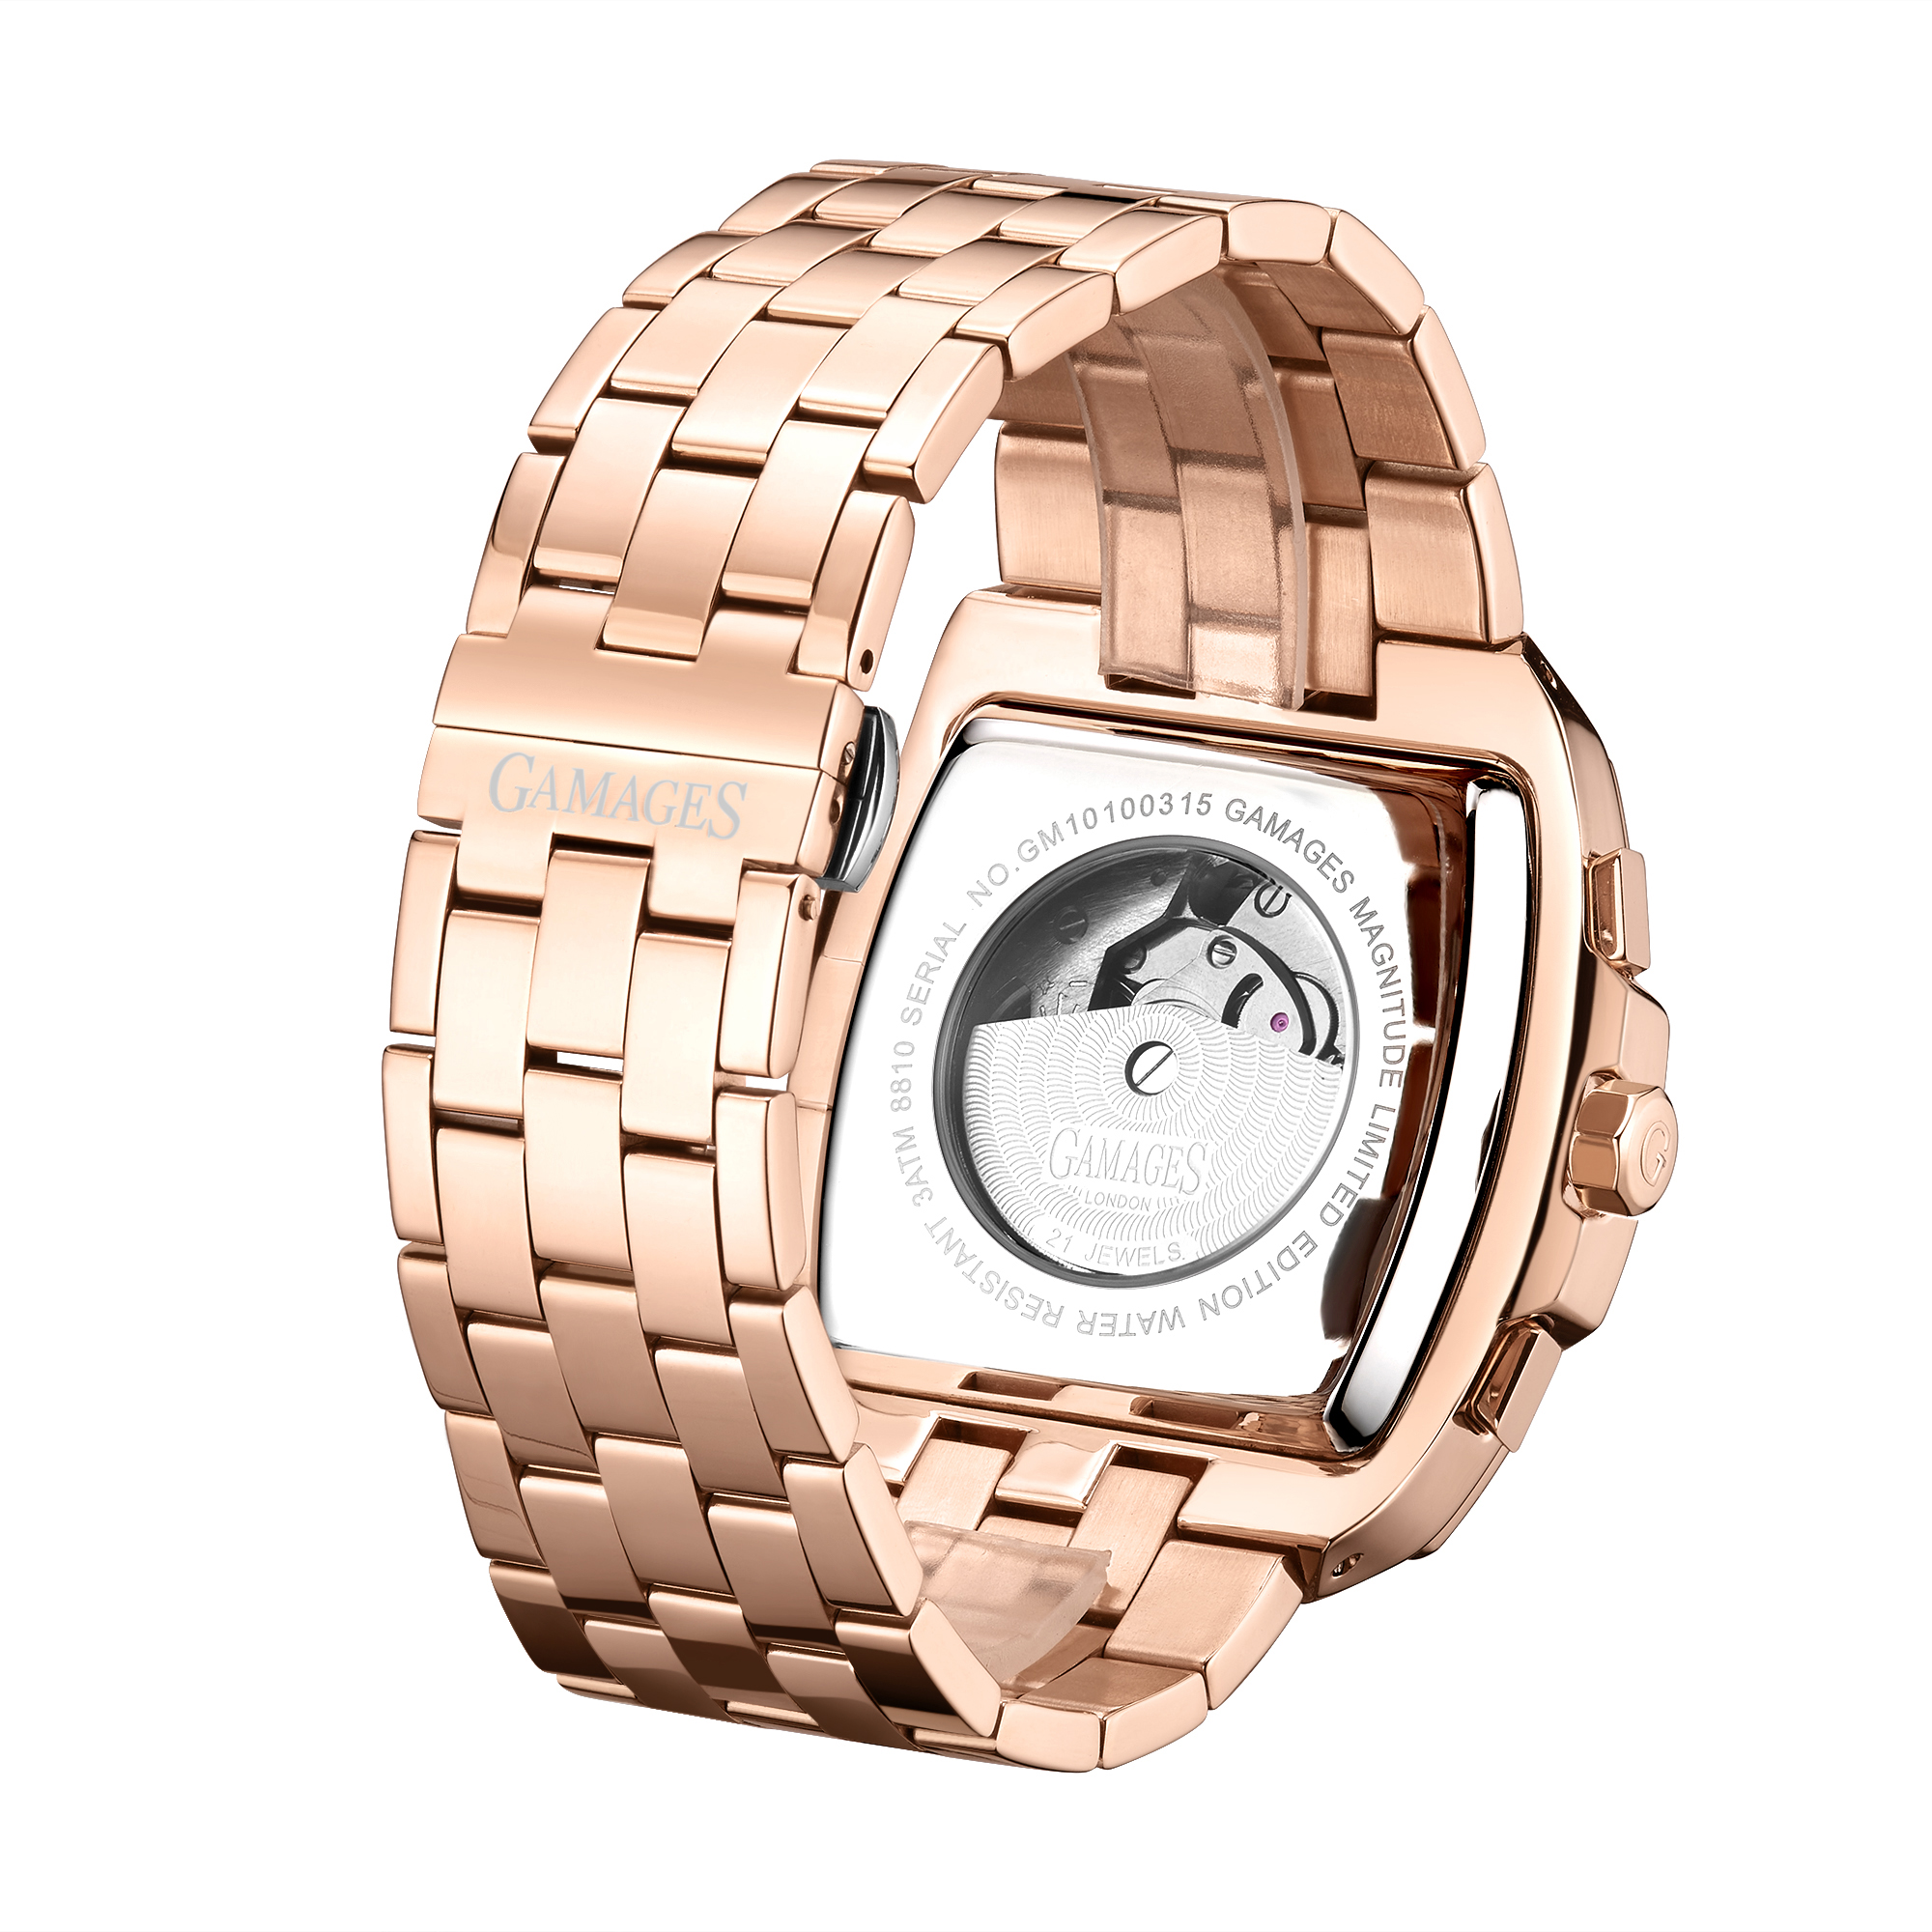 Limited Edition Hand Assembled Gamages Magnitude Automatic Rose – 5 Year Warranty & Free Delivery - Image 3 of 5